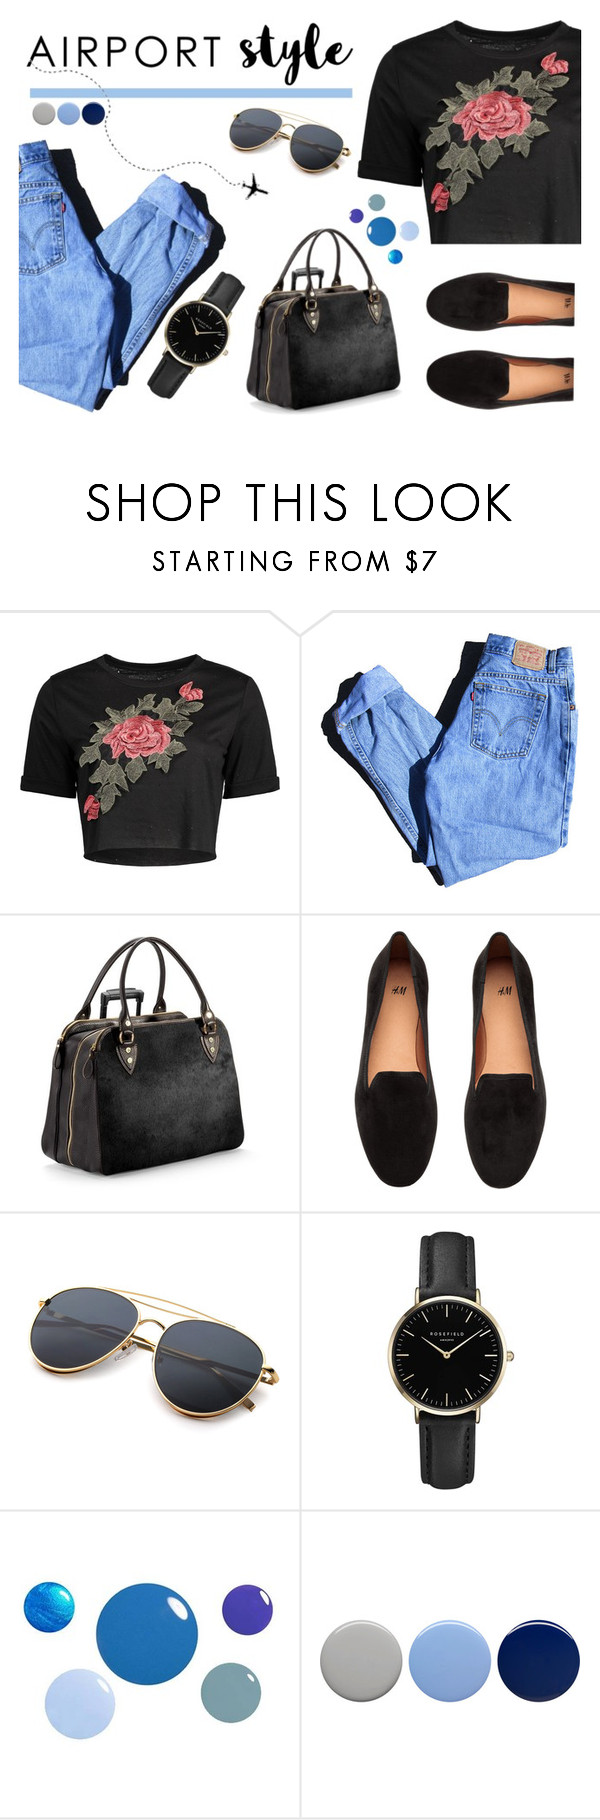 """Pilot's daugter"" by blueyed ❤ liked on Polyvore featuring Levi's, Aspinal of London, H&M, ROSEFIELD and Burberry"